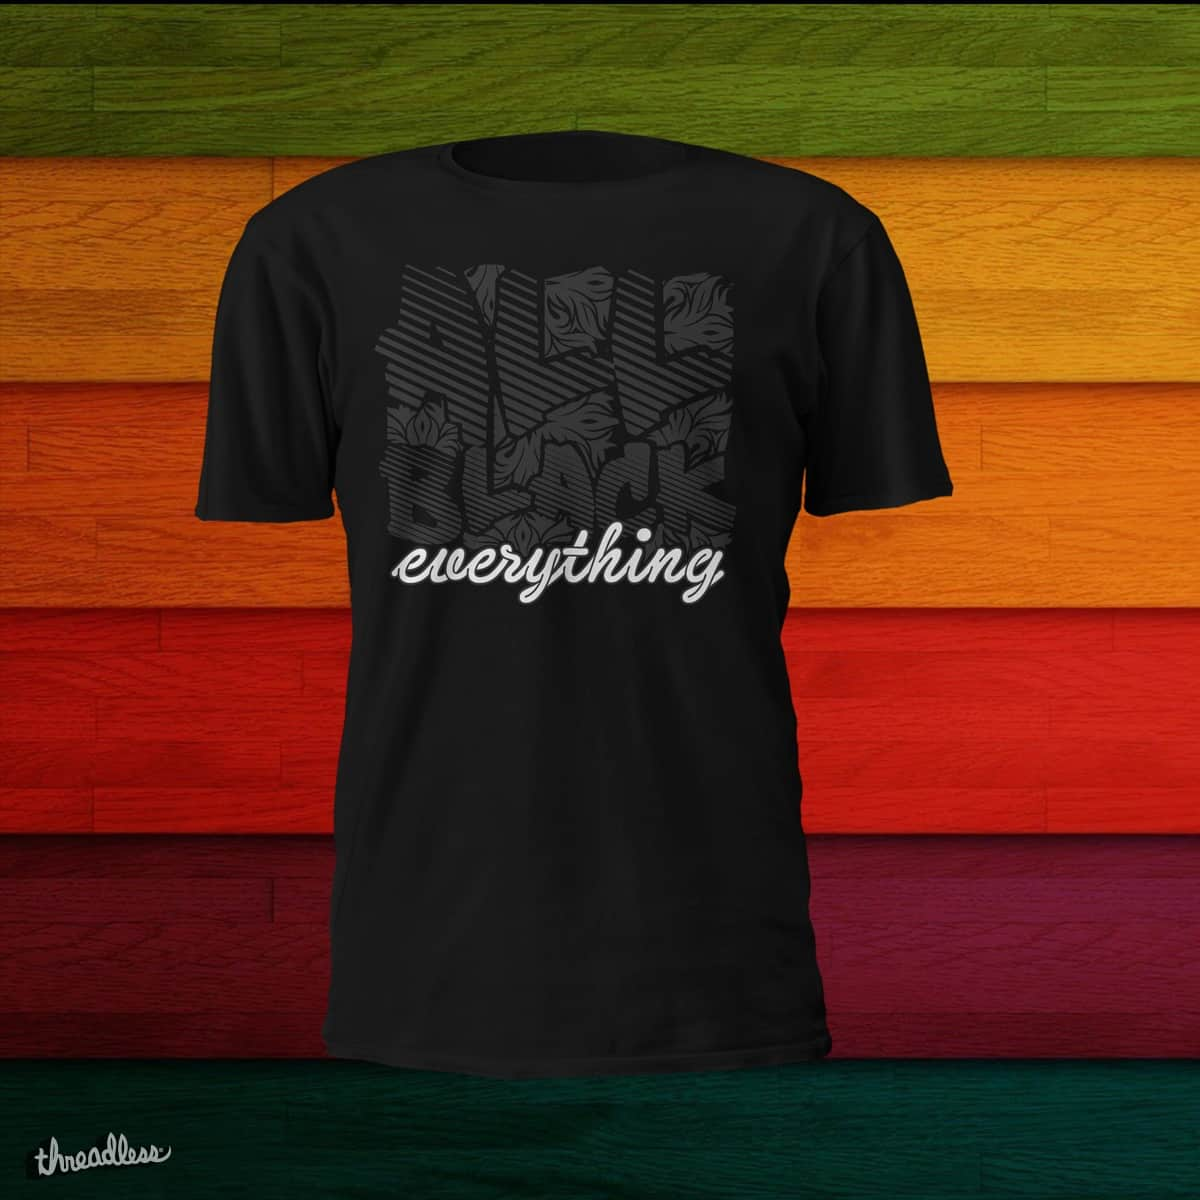 All Black everything v2 by tusclothing on Threadless